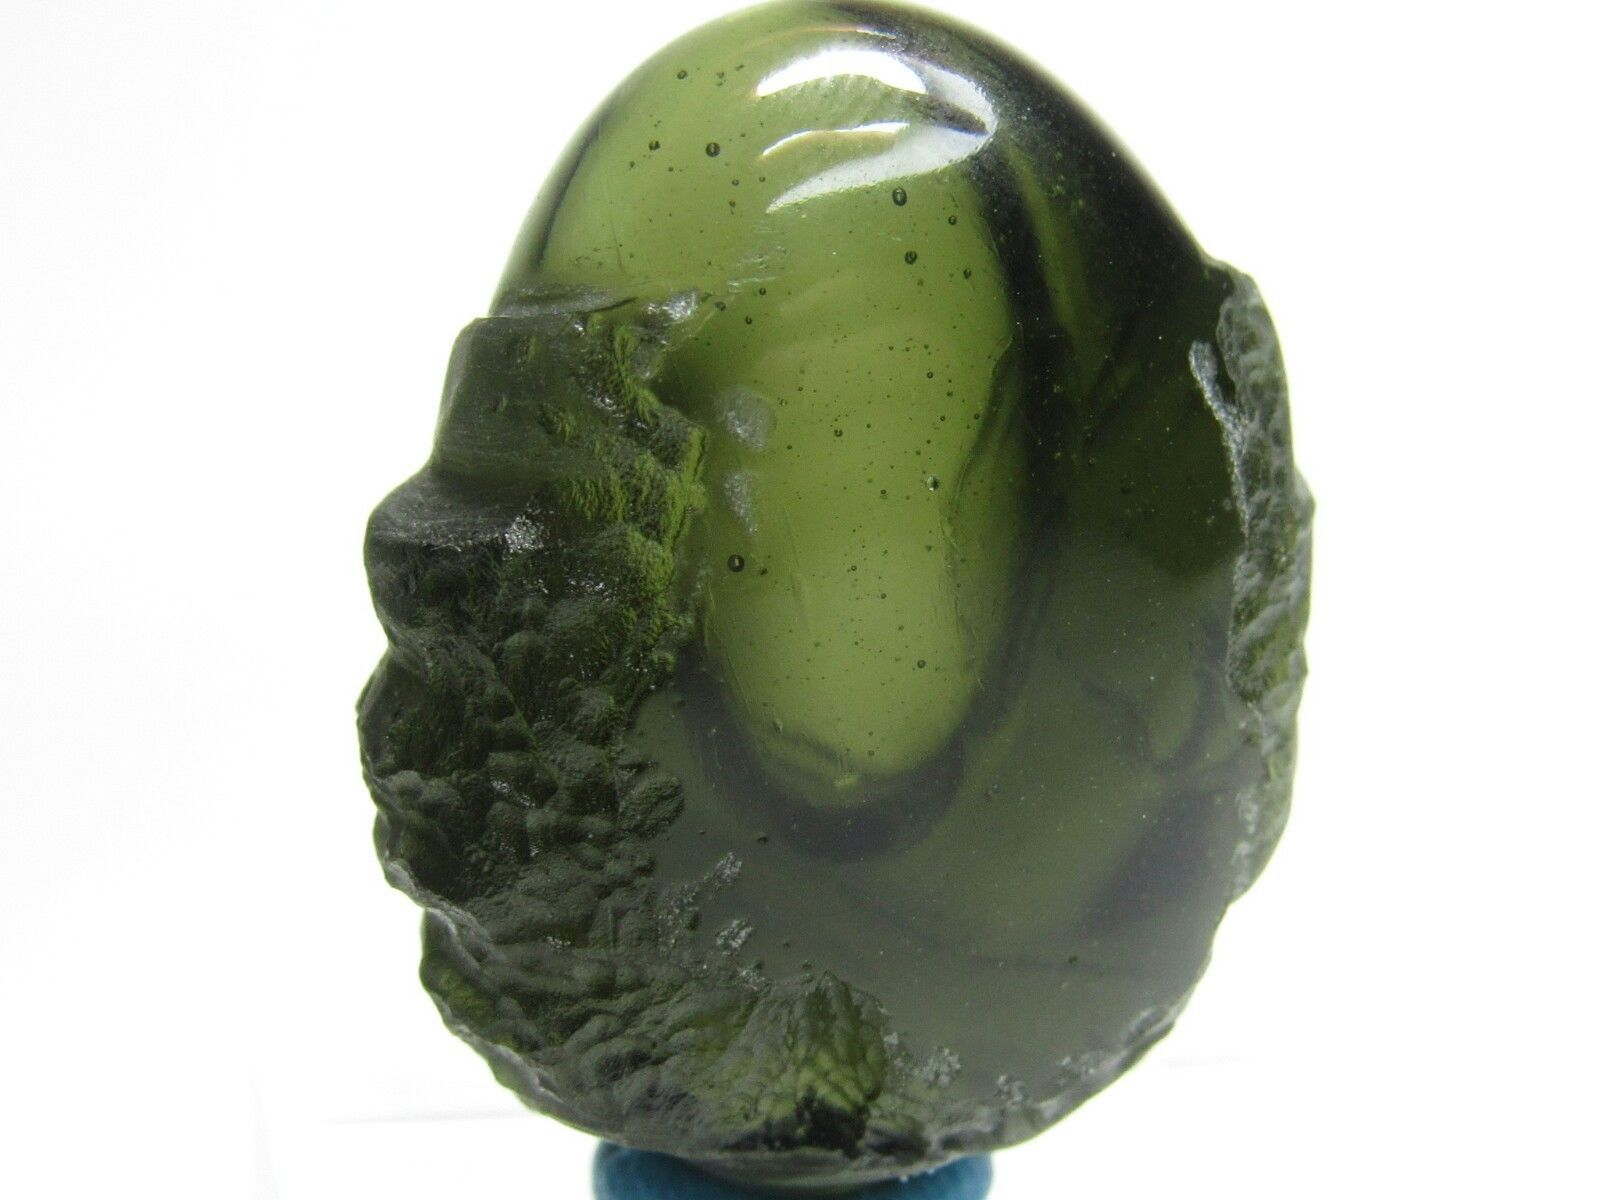 Ultra Exquisite Genuine Moldavite Green Tektite - Masterpiece Carving with Enormous Bubble